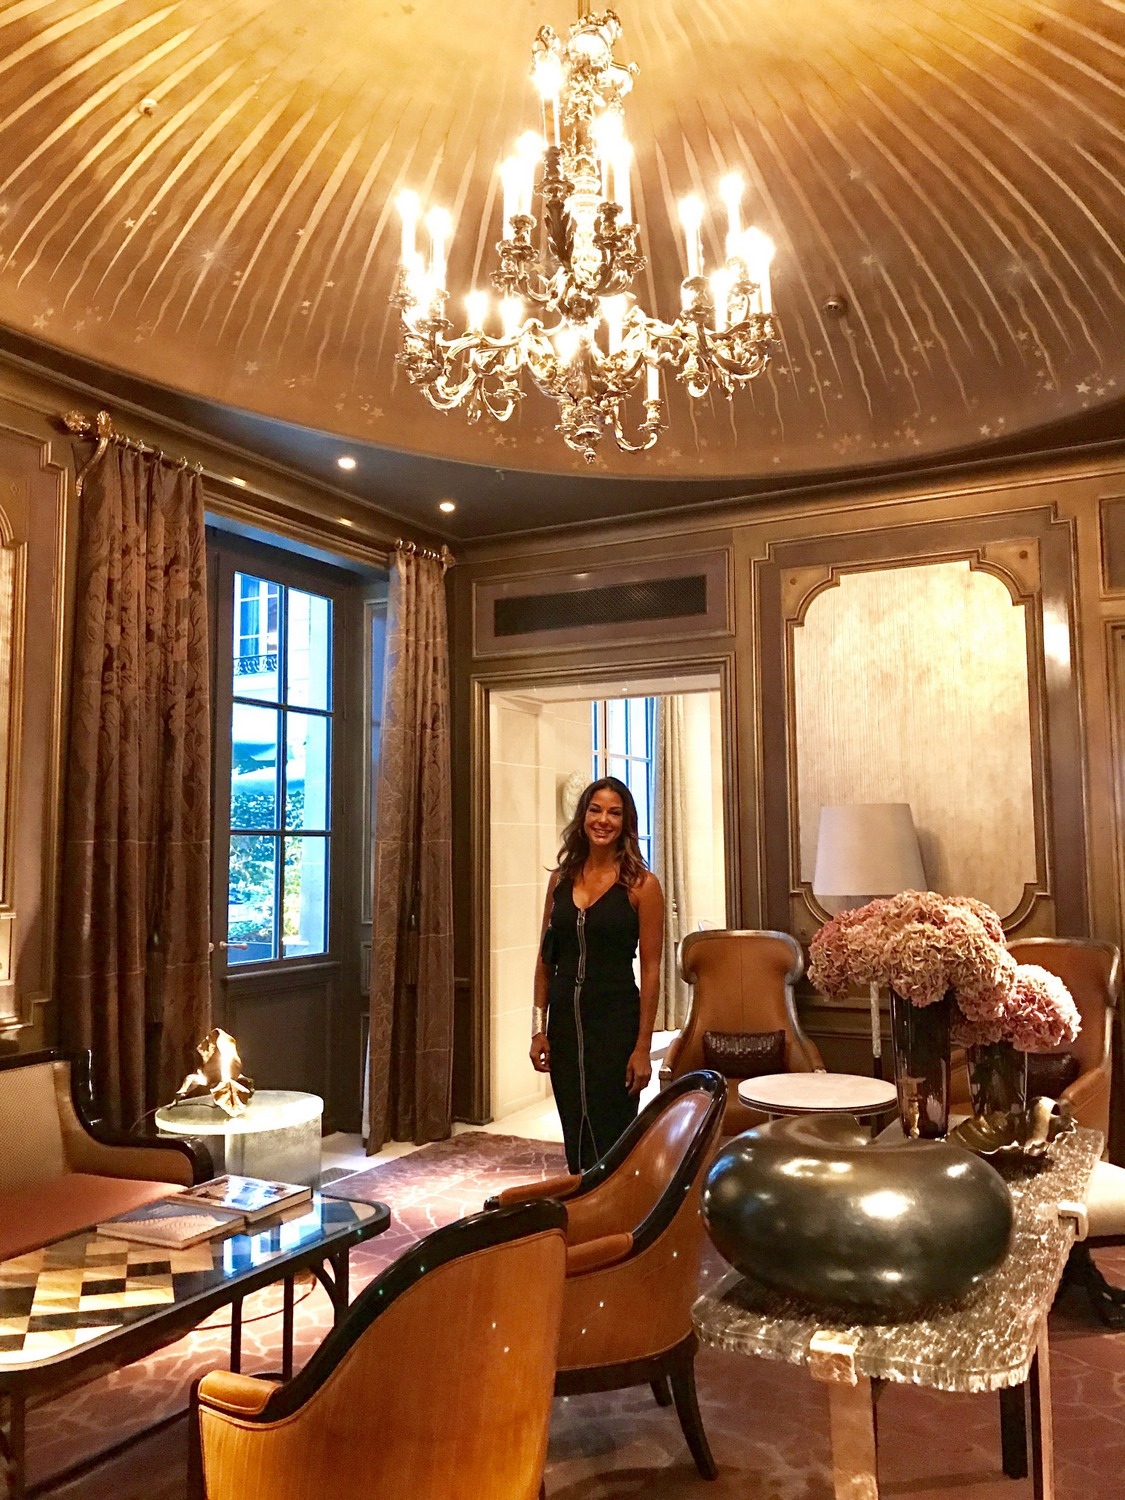 The Grand ReOpening of the Hotel de Crillon in Paris